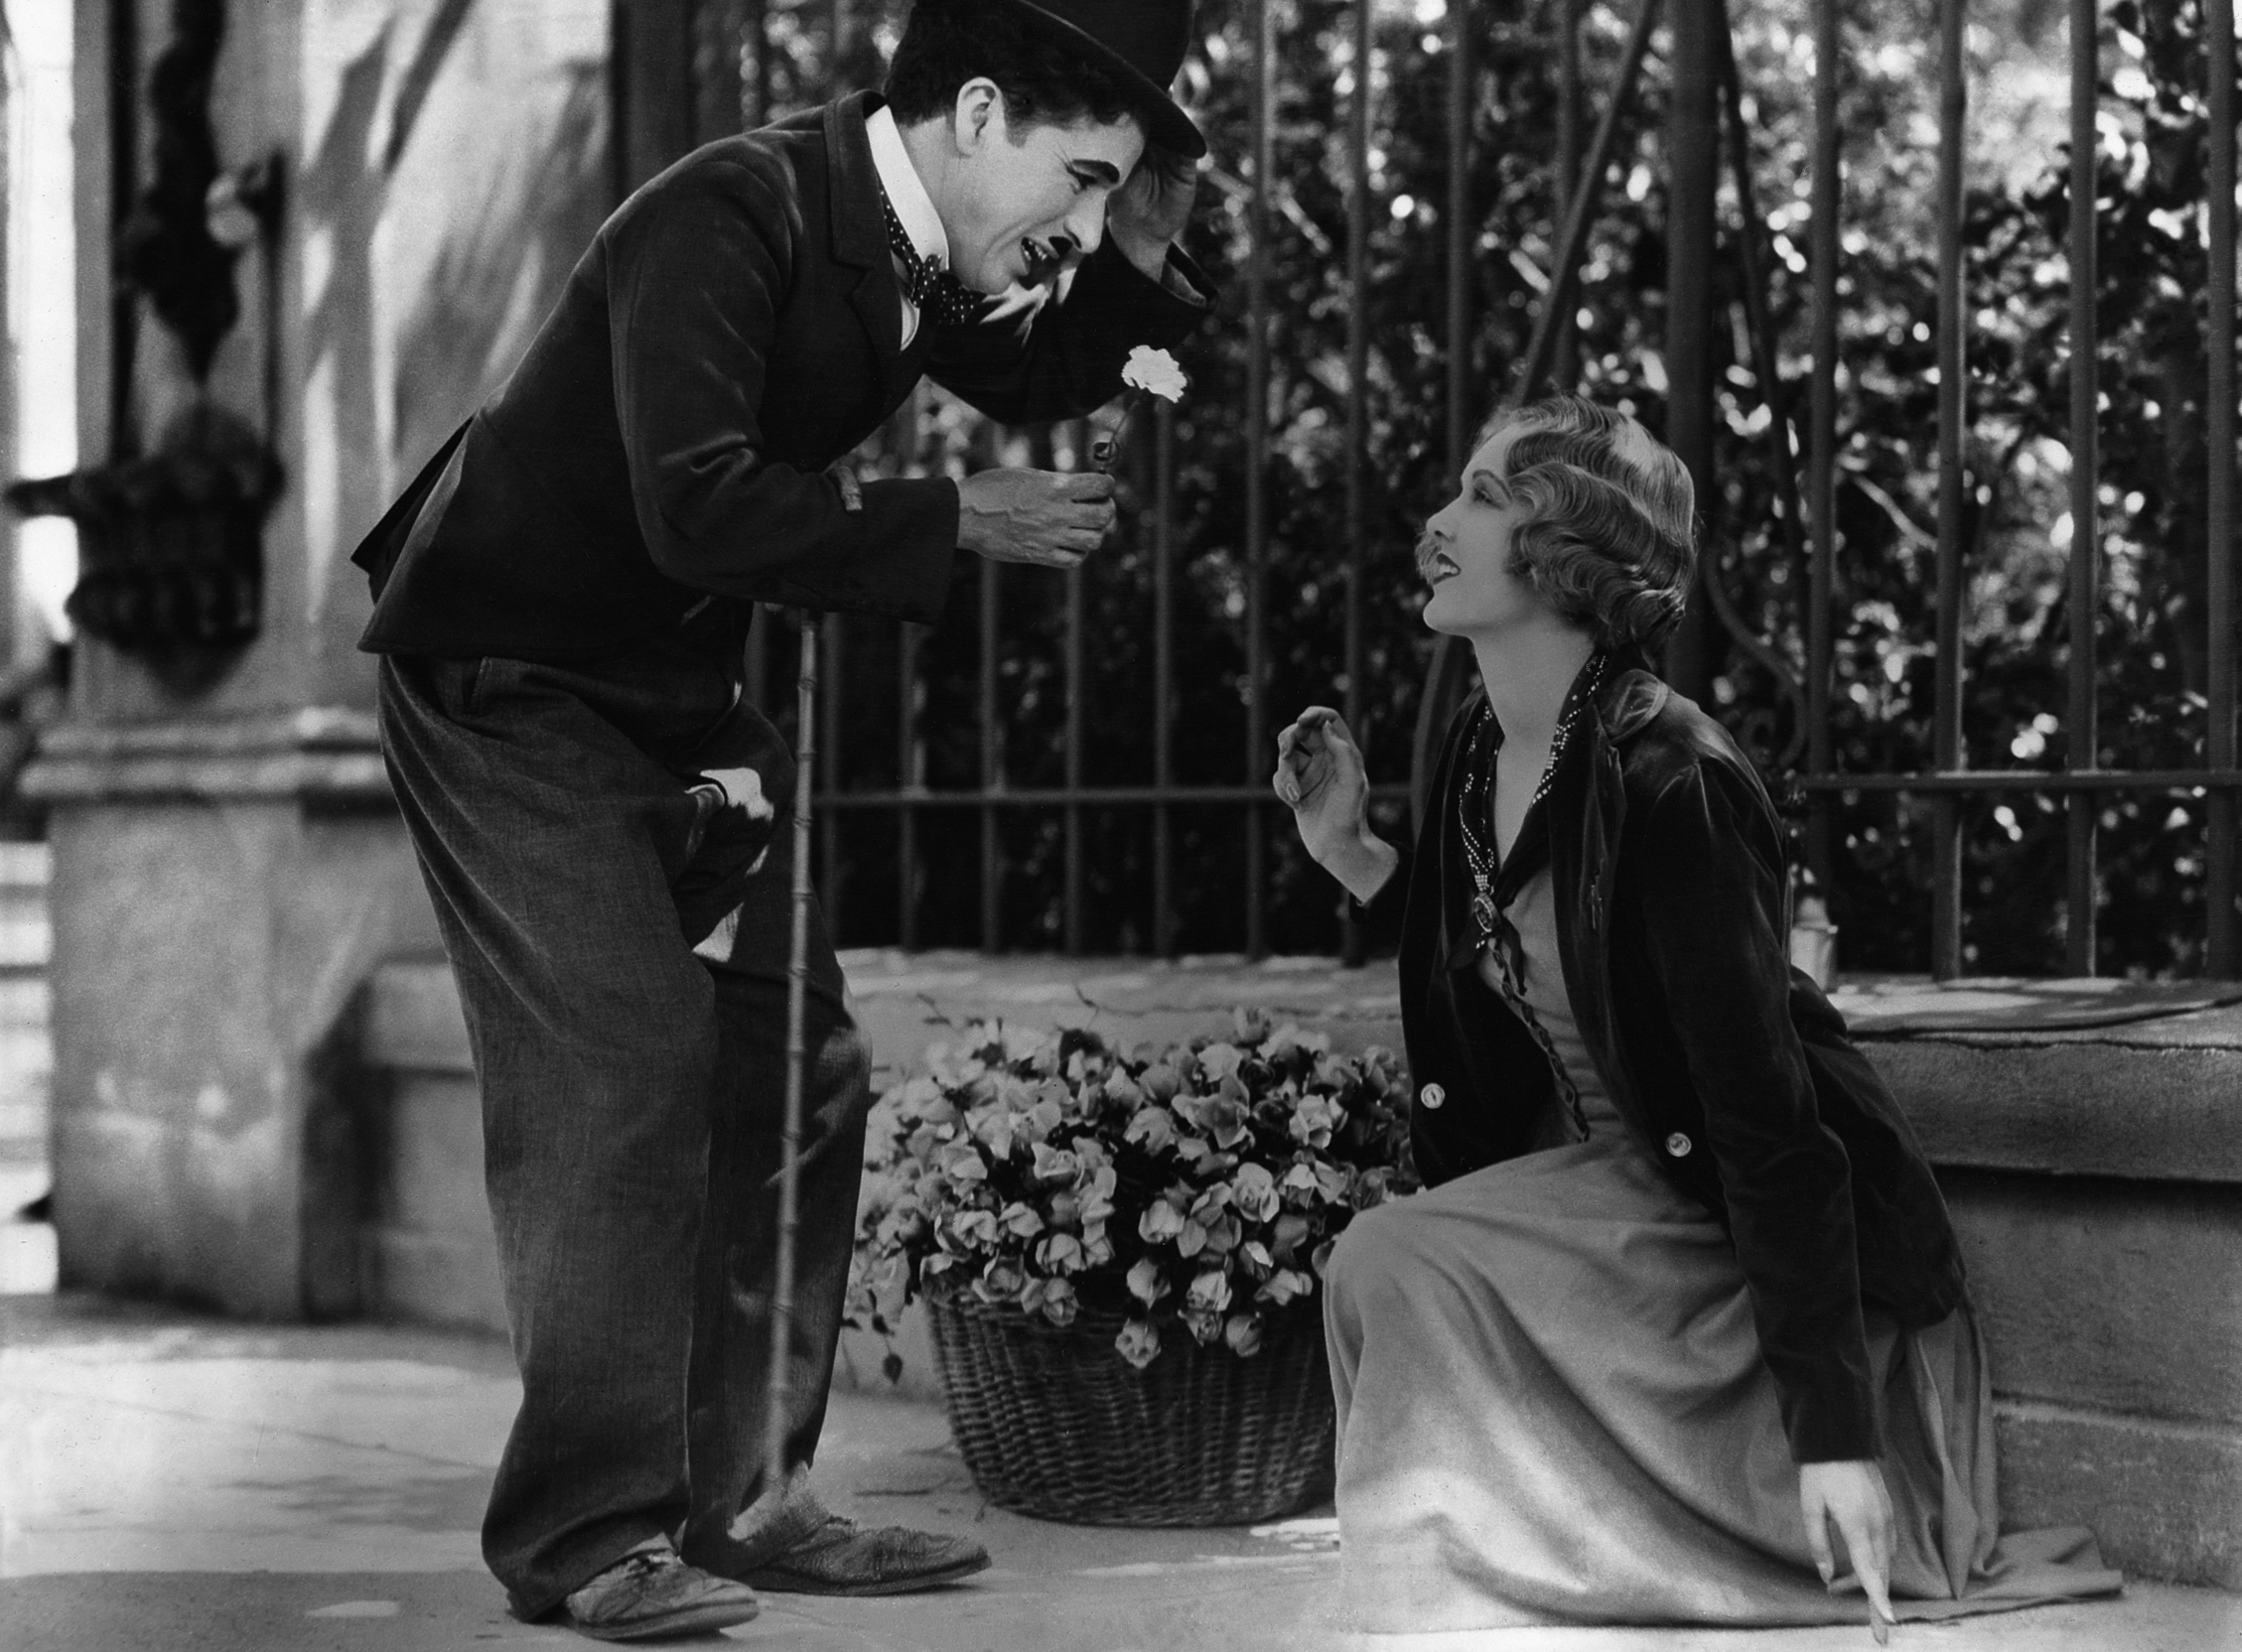 Charlie Chaplin in City Lights